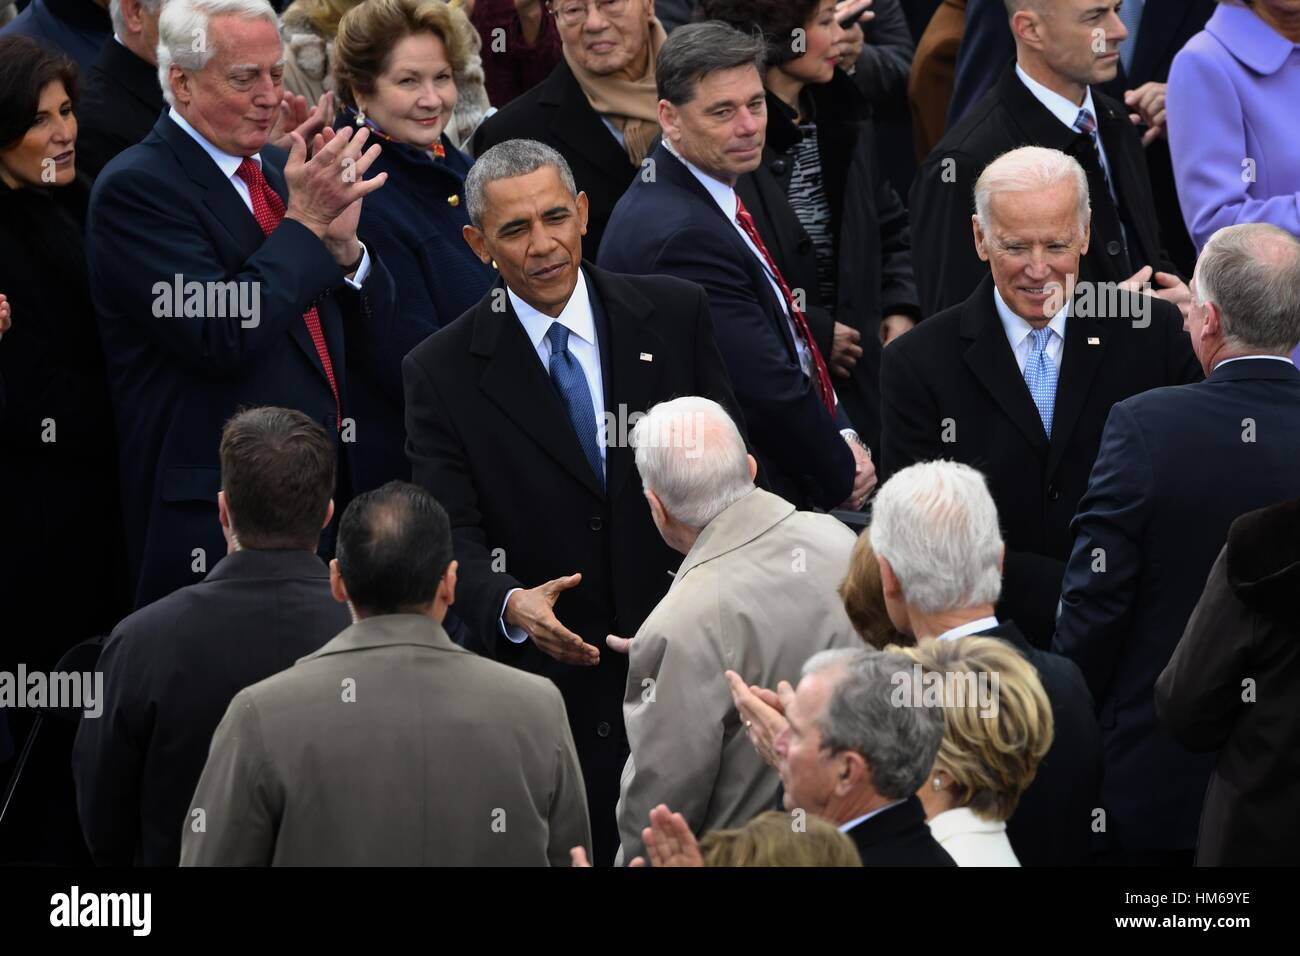 President barack obama greets former president jimmy carter after he president barack obama greets former president jimmy carter after he arrived for the president inaugural ceremony on capitol hill january 20 m4hsunfo